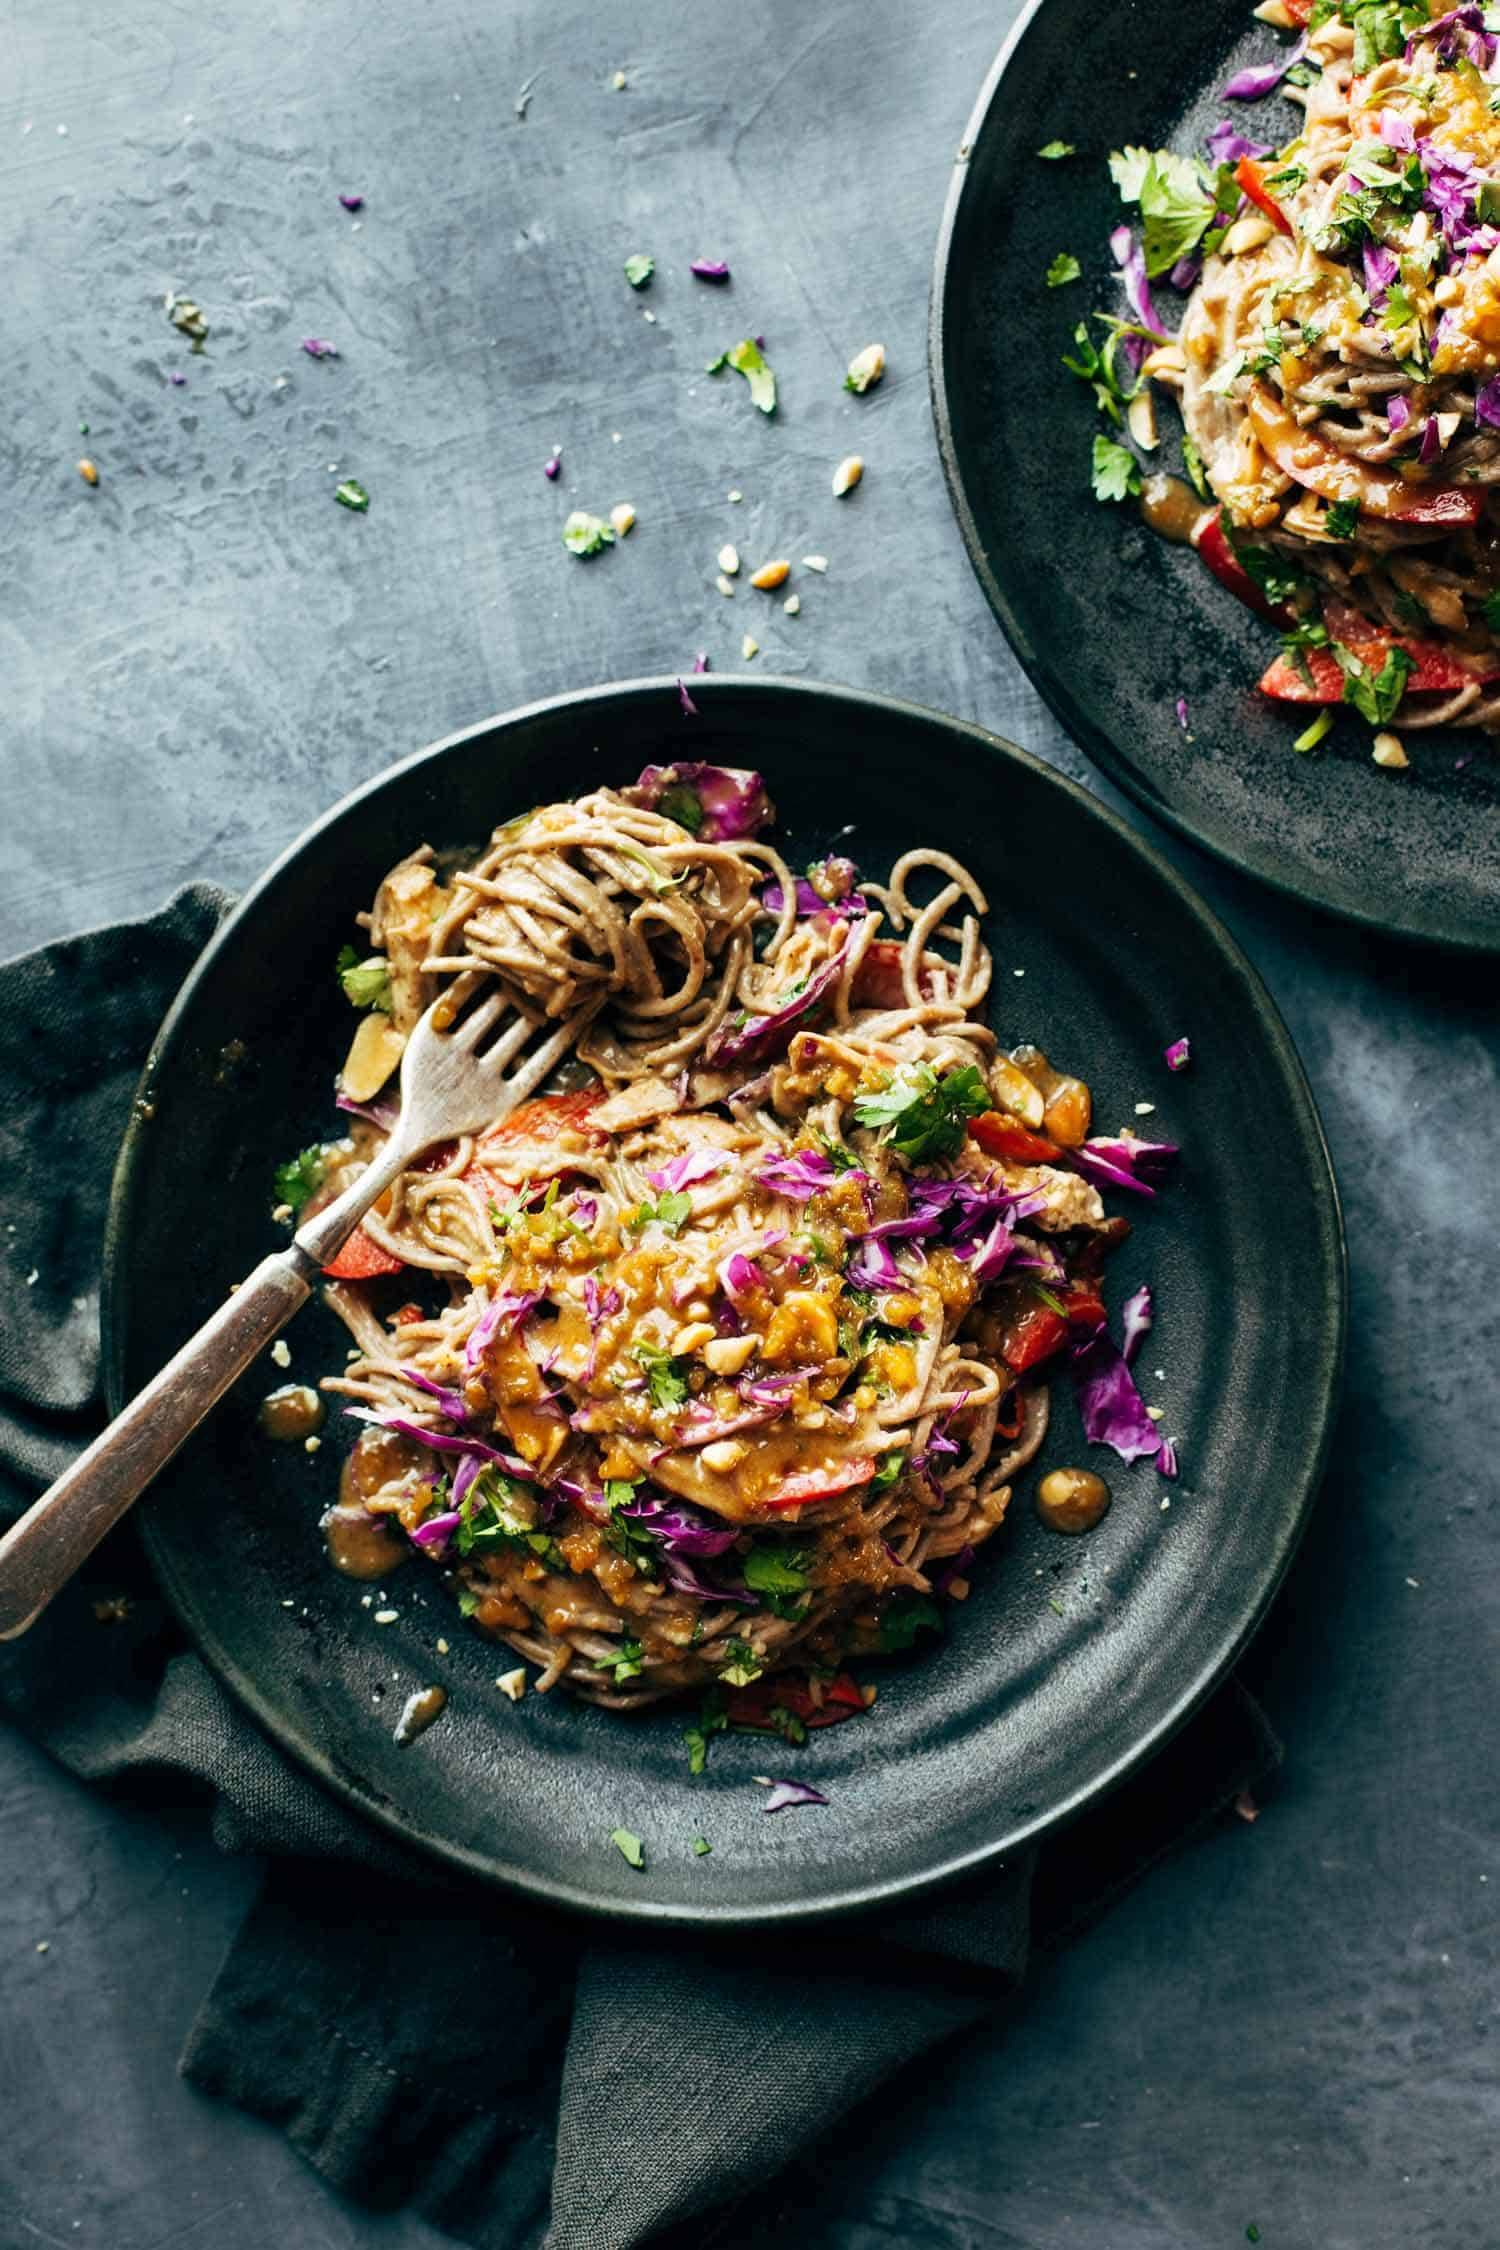 Spicy Peanut Soba Noodle Salad - red peppers, cabbage, chicken, soba noodles, and a quick homemade spicy peanut sauce. salads don't get much yummier than this. gluten free. | pinchofyum.com